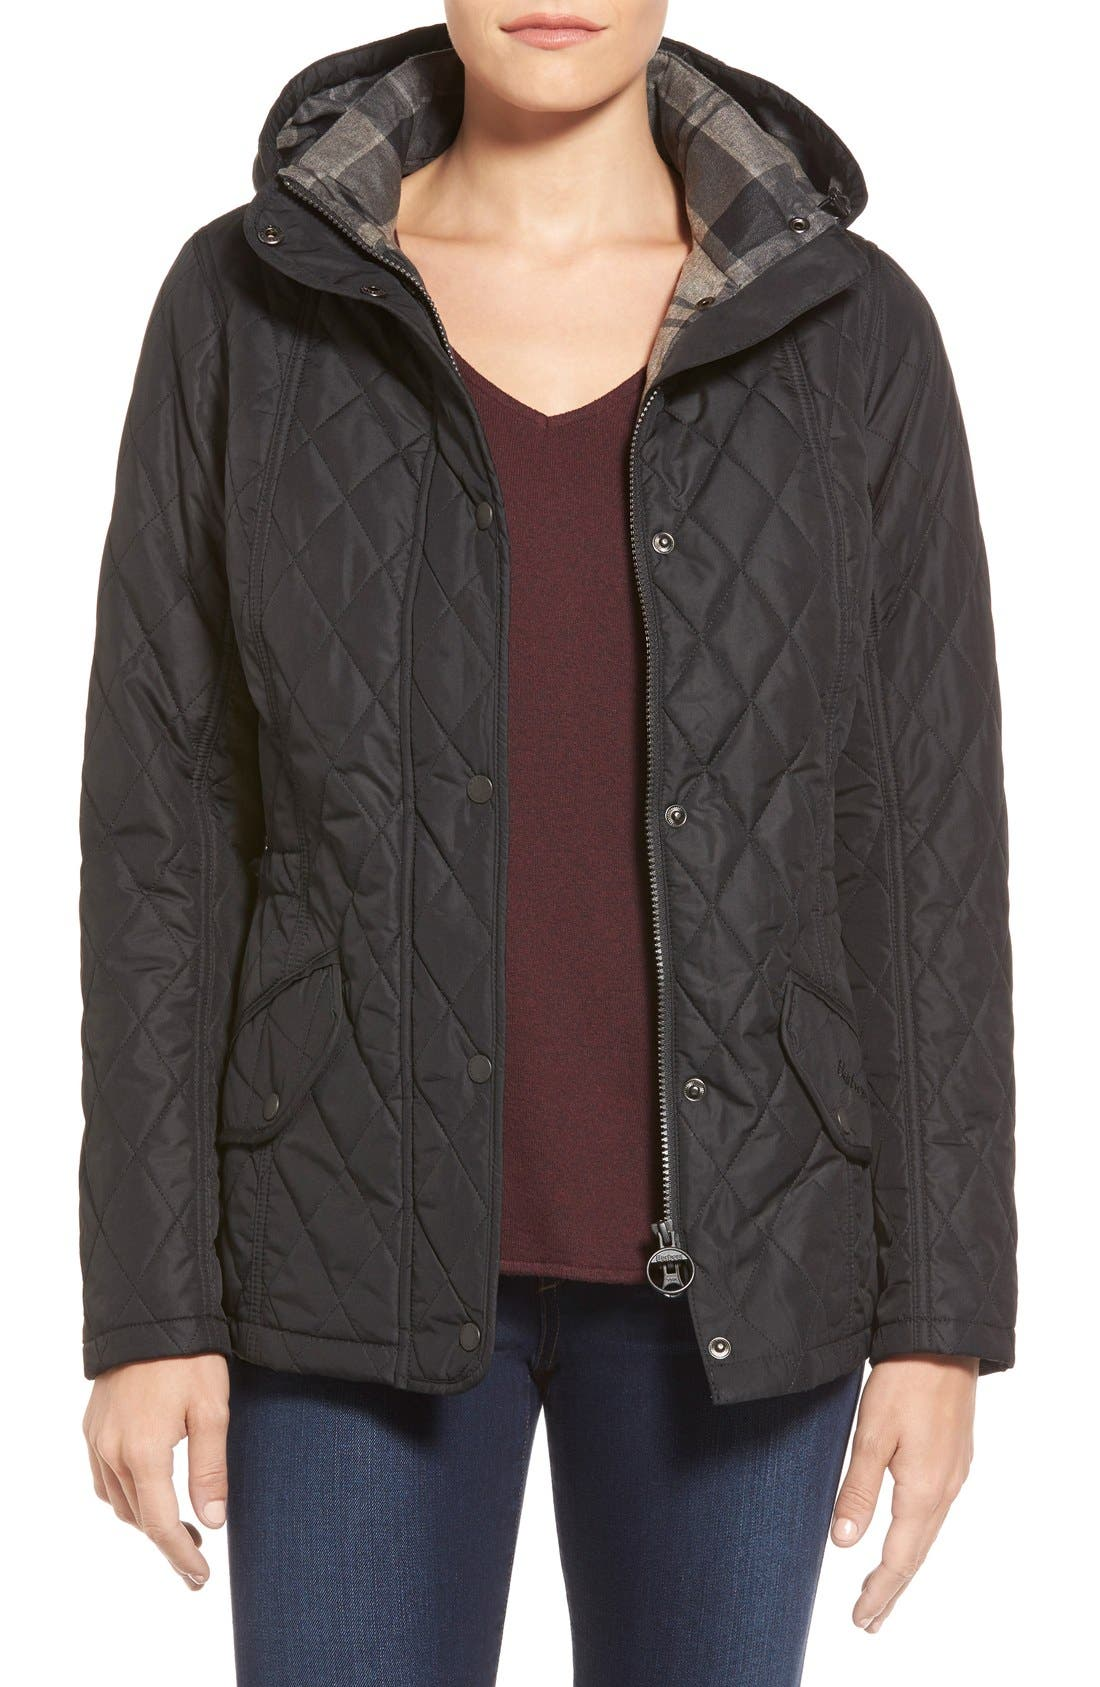 Barbour 'Millfire' Hooded Quilted Jacket